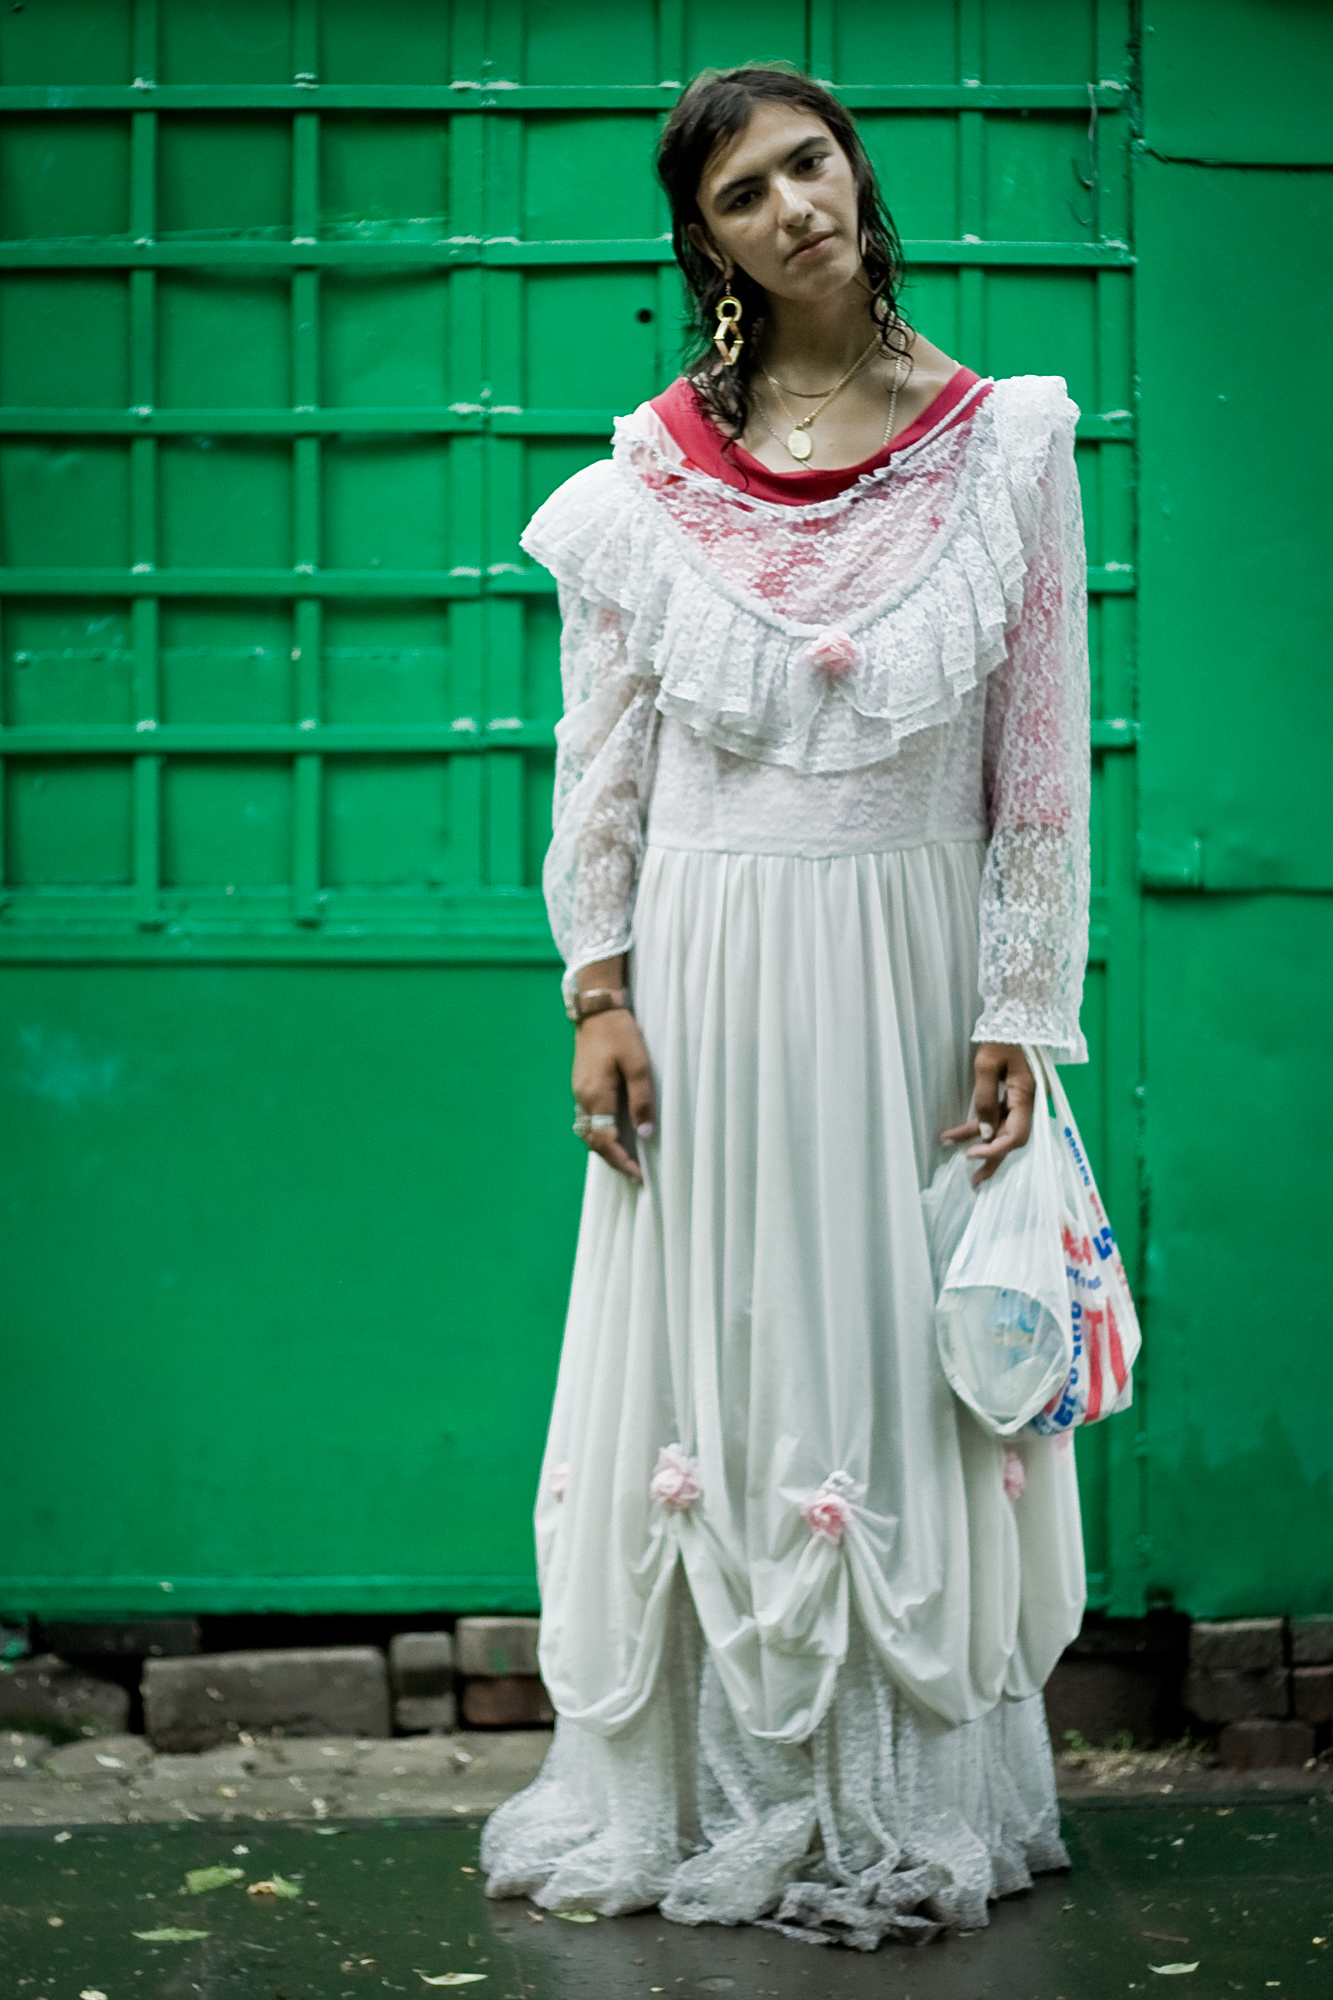 MARIAM   Mariam and I met in the street on a gloomy day. The heavy rain had just ended and she was walking in a wet wedding dress. I went up to meet her and it turned out that she could not articulate herself clearly, which did not seem important. She was not wearing the wedding dress for a special occasion, she was just going home.    Mariam later told me her relatives had sent her the dress from America, and she liked wearing it. She also showed me a picture where she posed in this dress and a bucket of flowers in a photo studio.